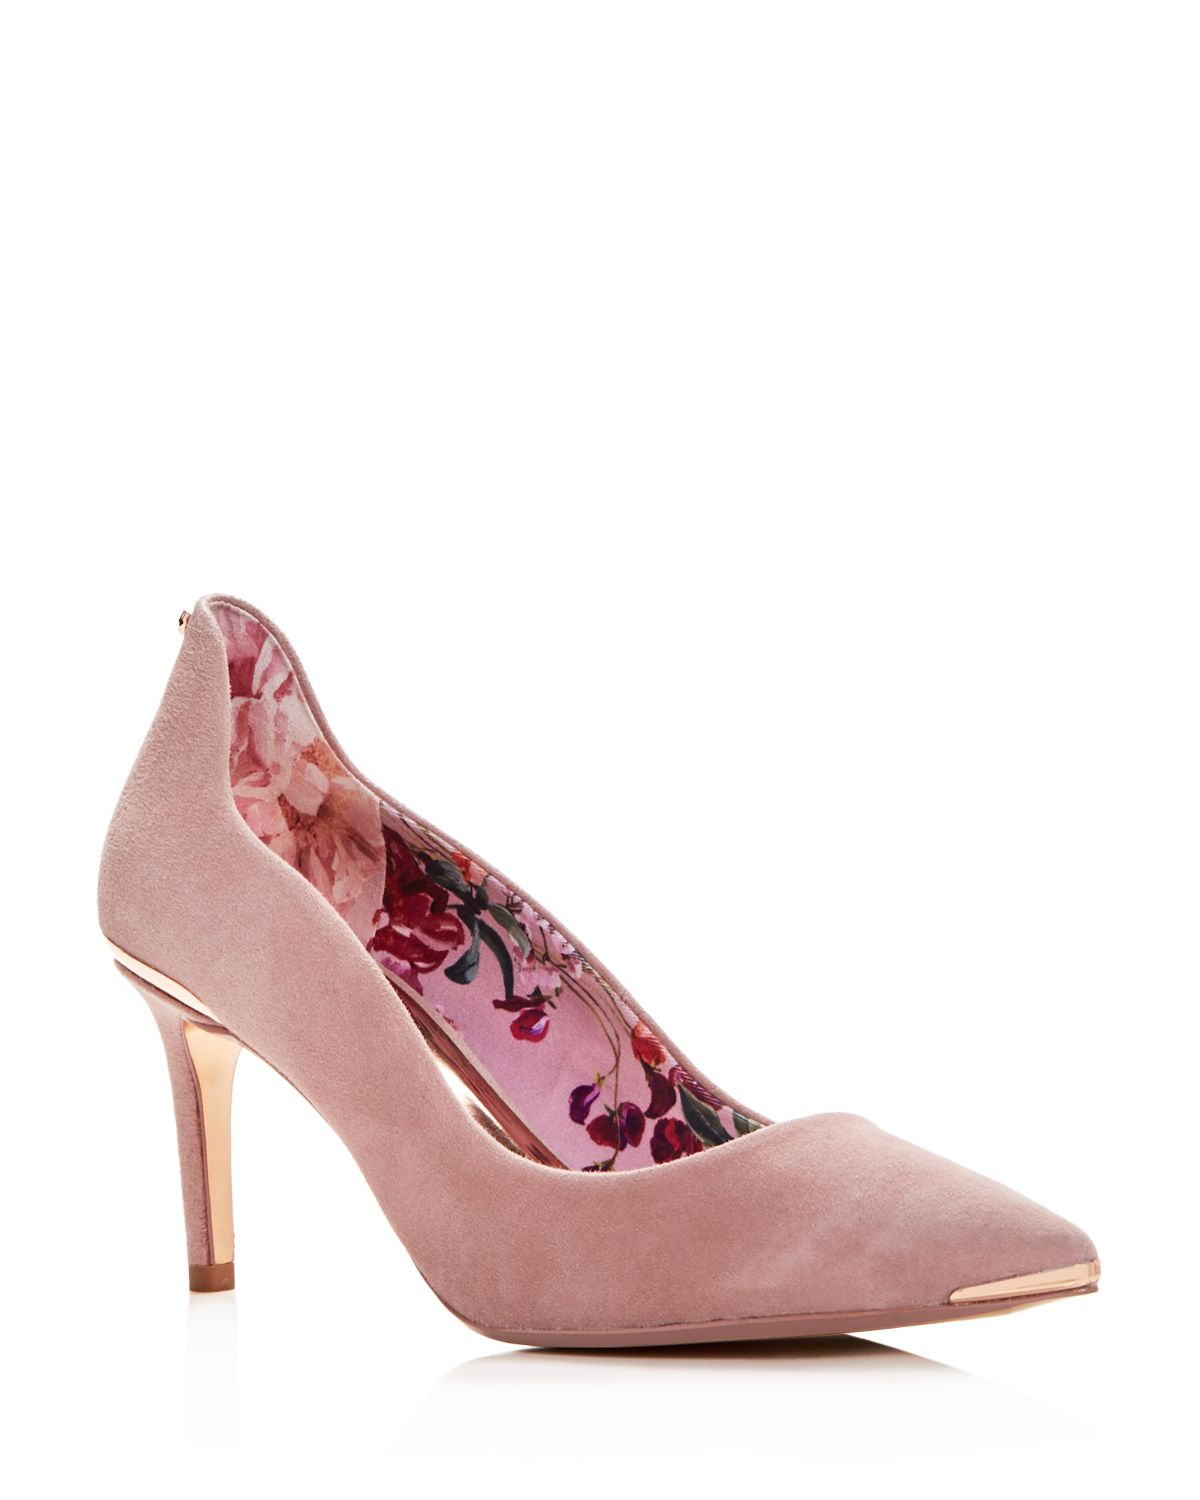 Women's Vixyns Suede Pointed Toe Pumps by Ted Baker